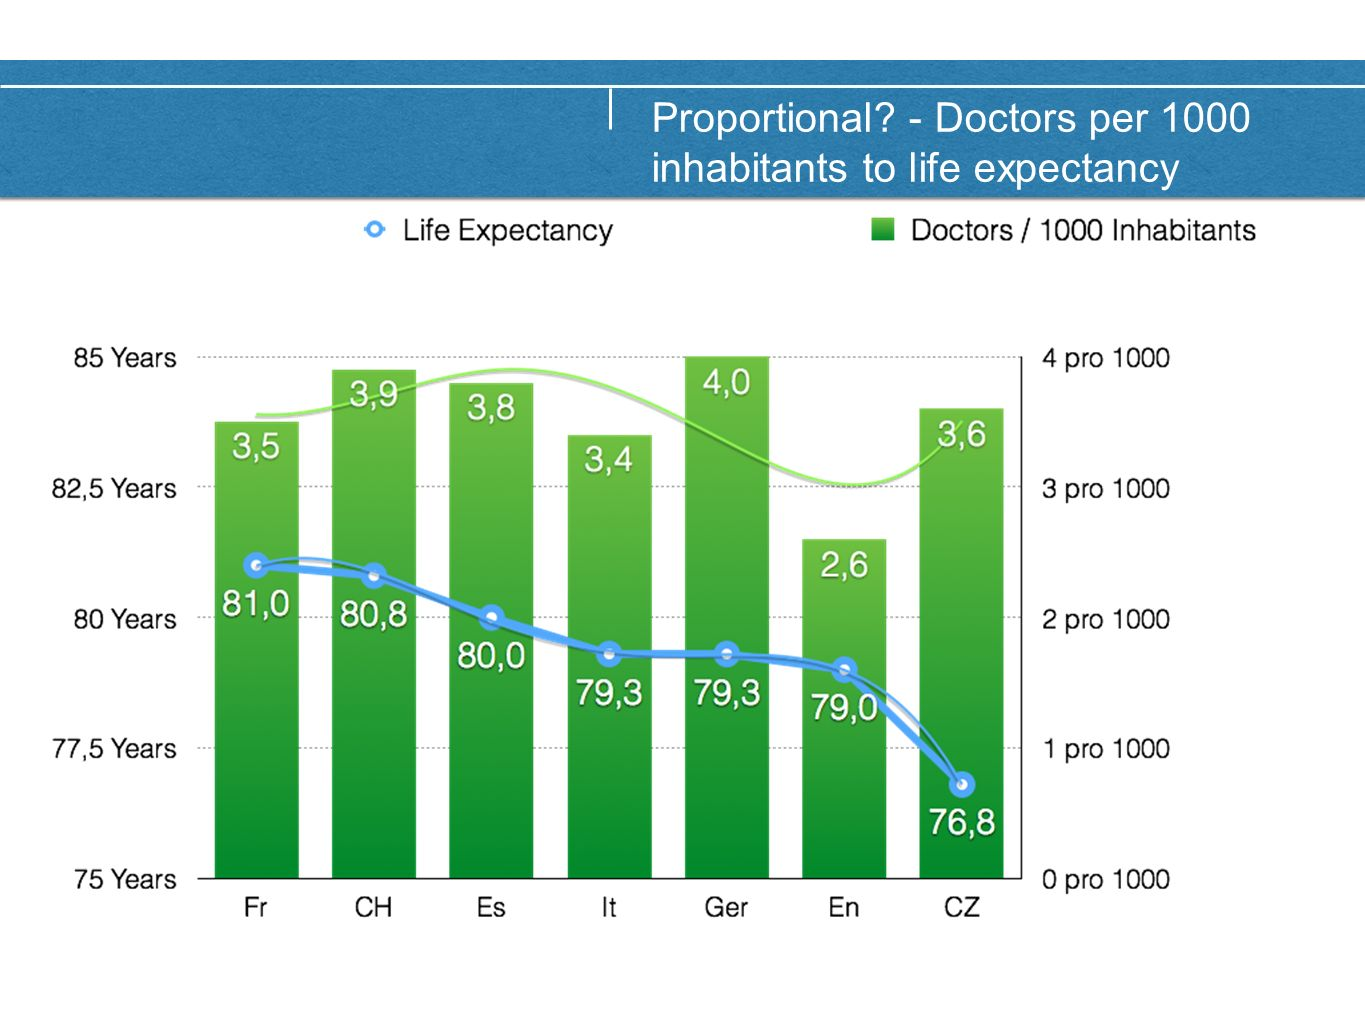 Proportional? - Money spend on health care to life expectancy